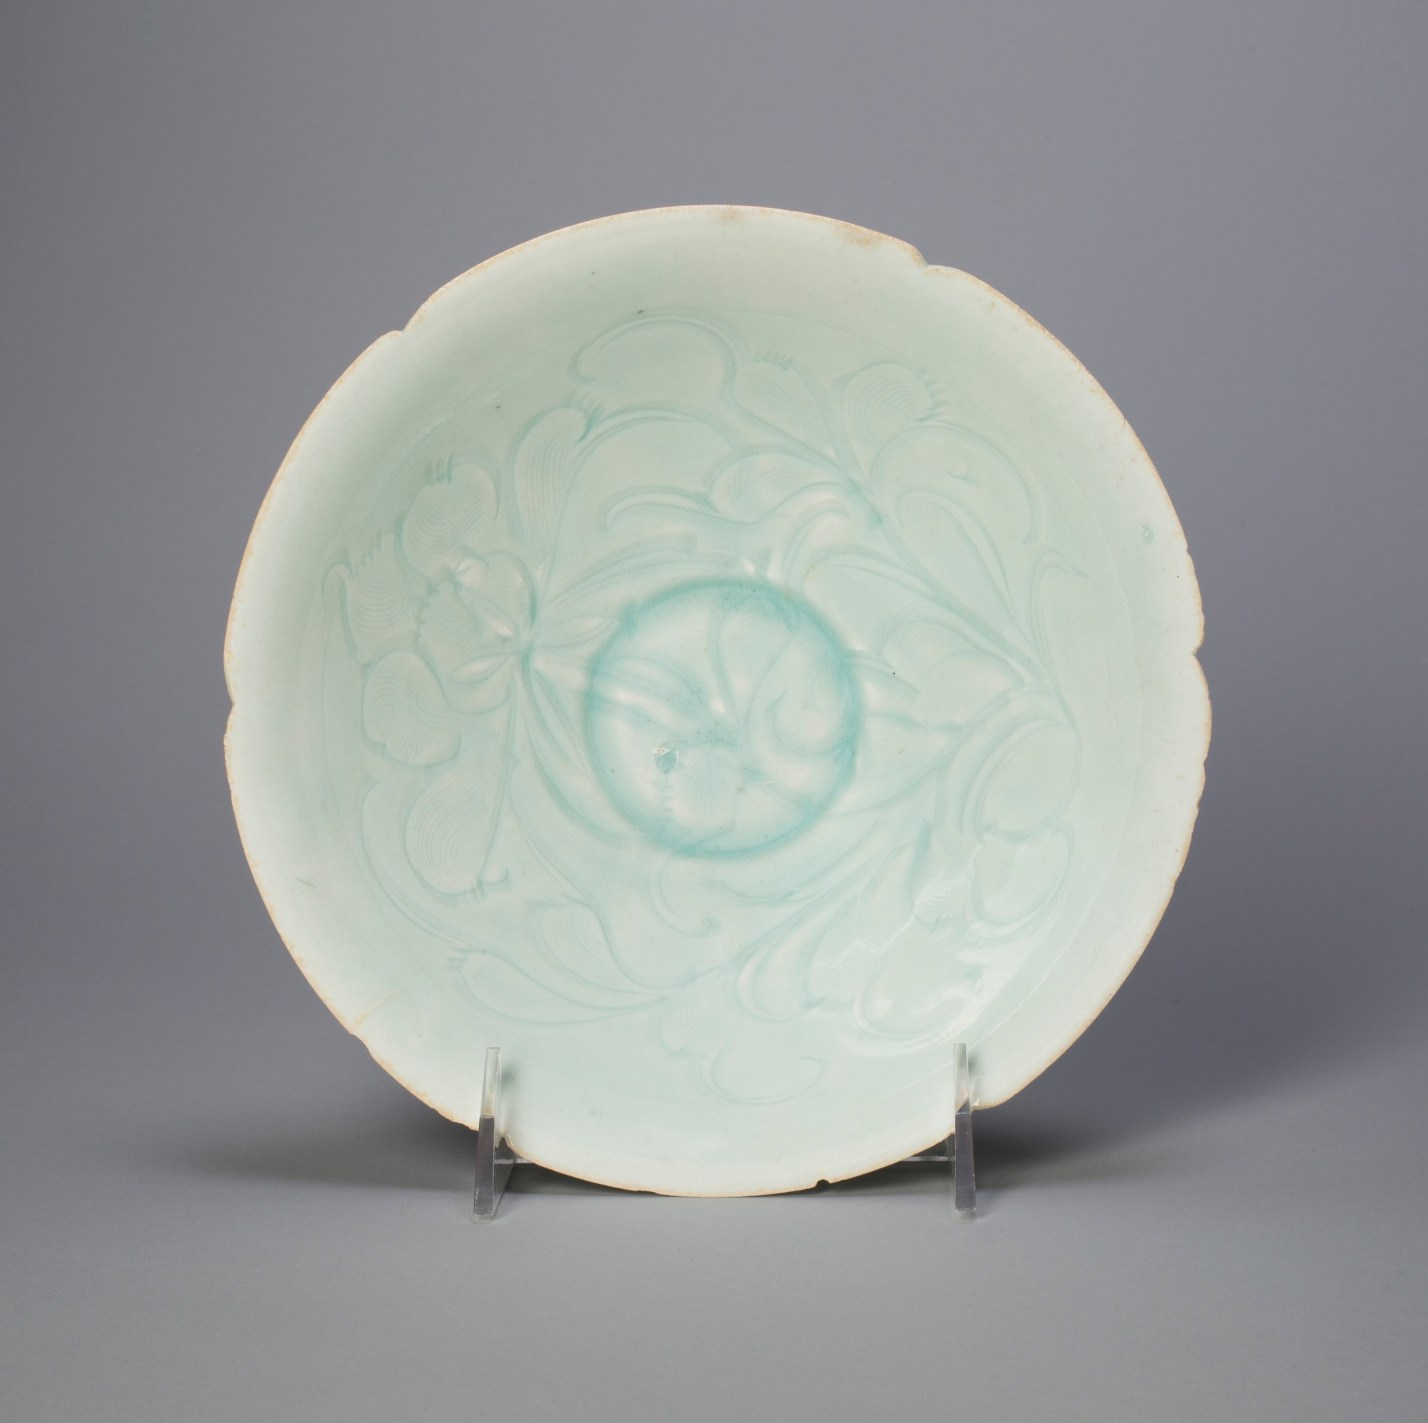 Foliate bowl with stylized peony spray, China, Northern Song dynasty, 12th century. Porcelain with underglaze carved decoration, height 7.1 cm, diameter 20.1 cm. Art Institute of Chicago, bequest of Russell Tyson, 1964.847. Photograph courtesy of The Art Institute of Chicago/Art Resource, NY